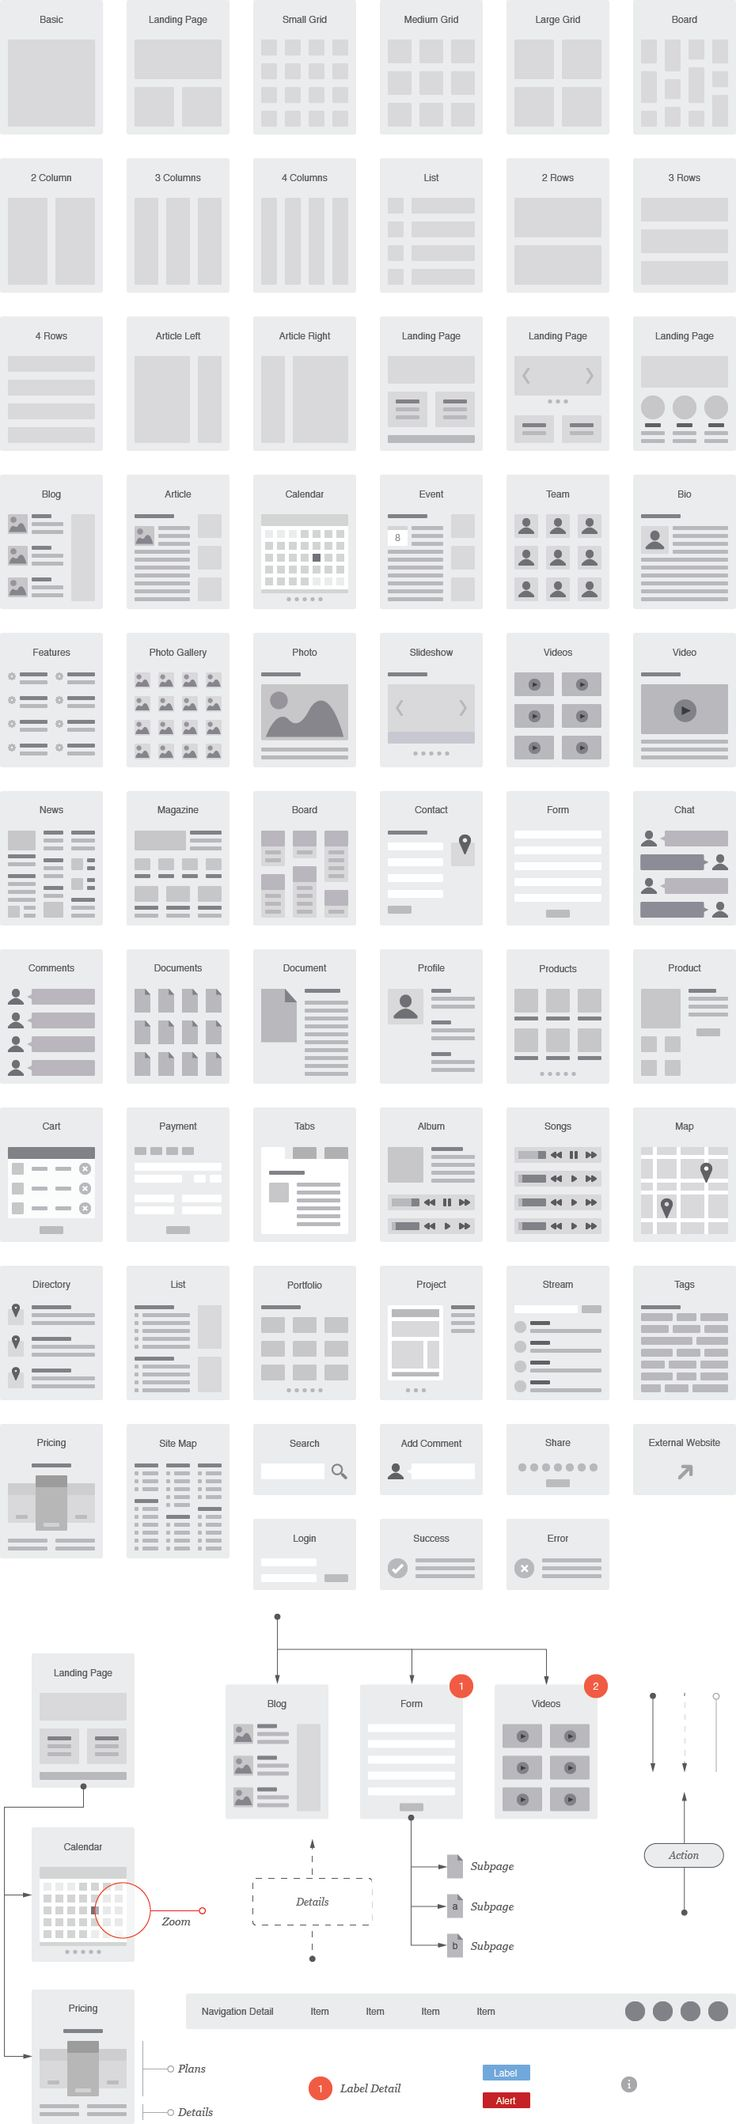 Another nice collection of wireframe ideas to be starting a page with. Pretty much always like to have something like this just to start with so I have a visual reference for a grid.